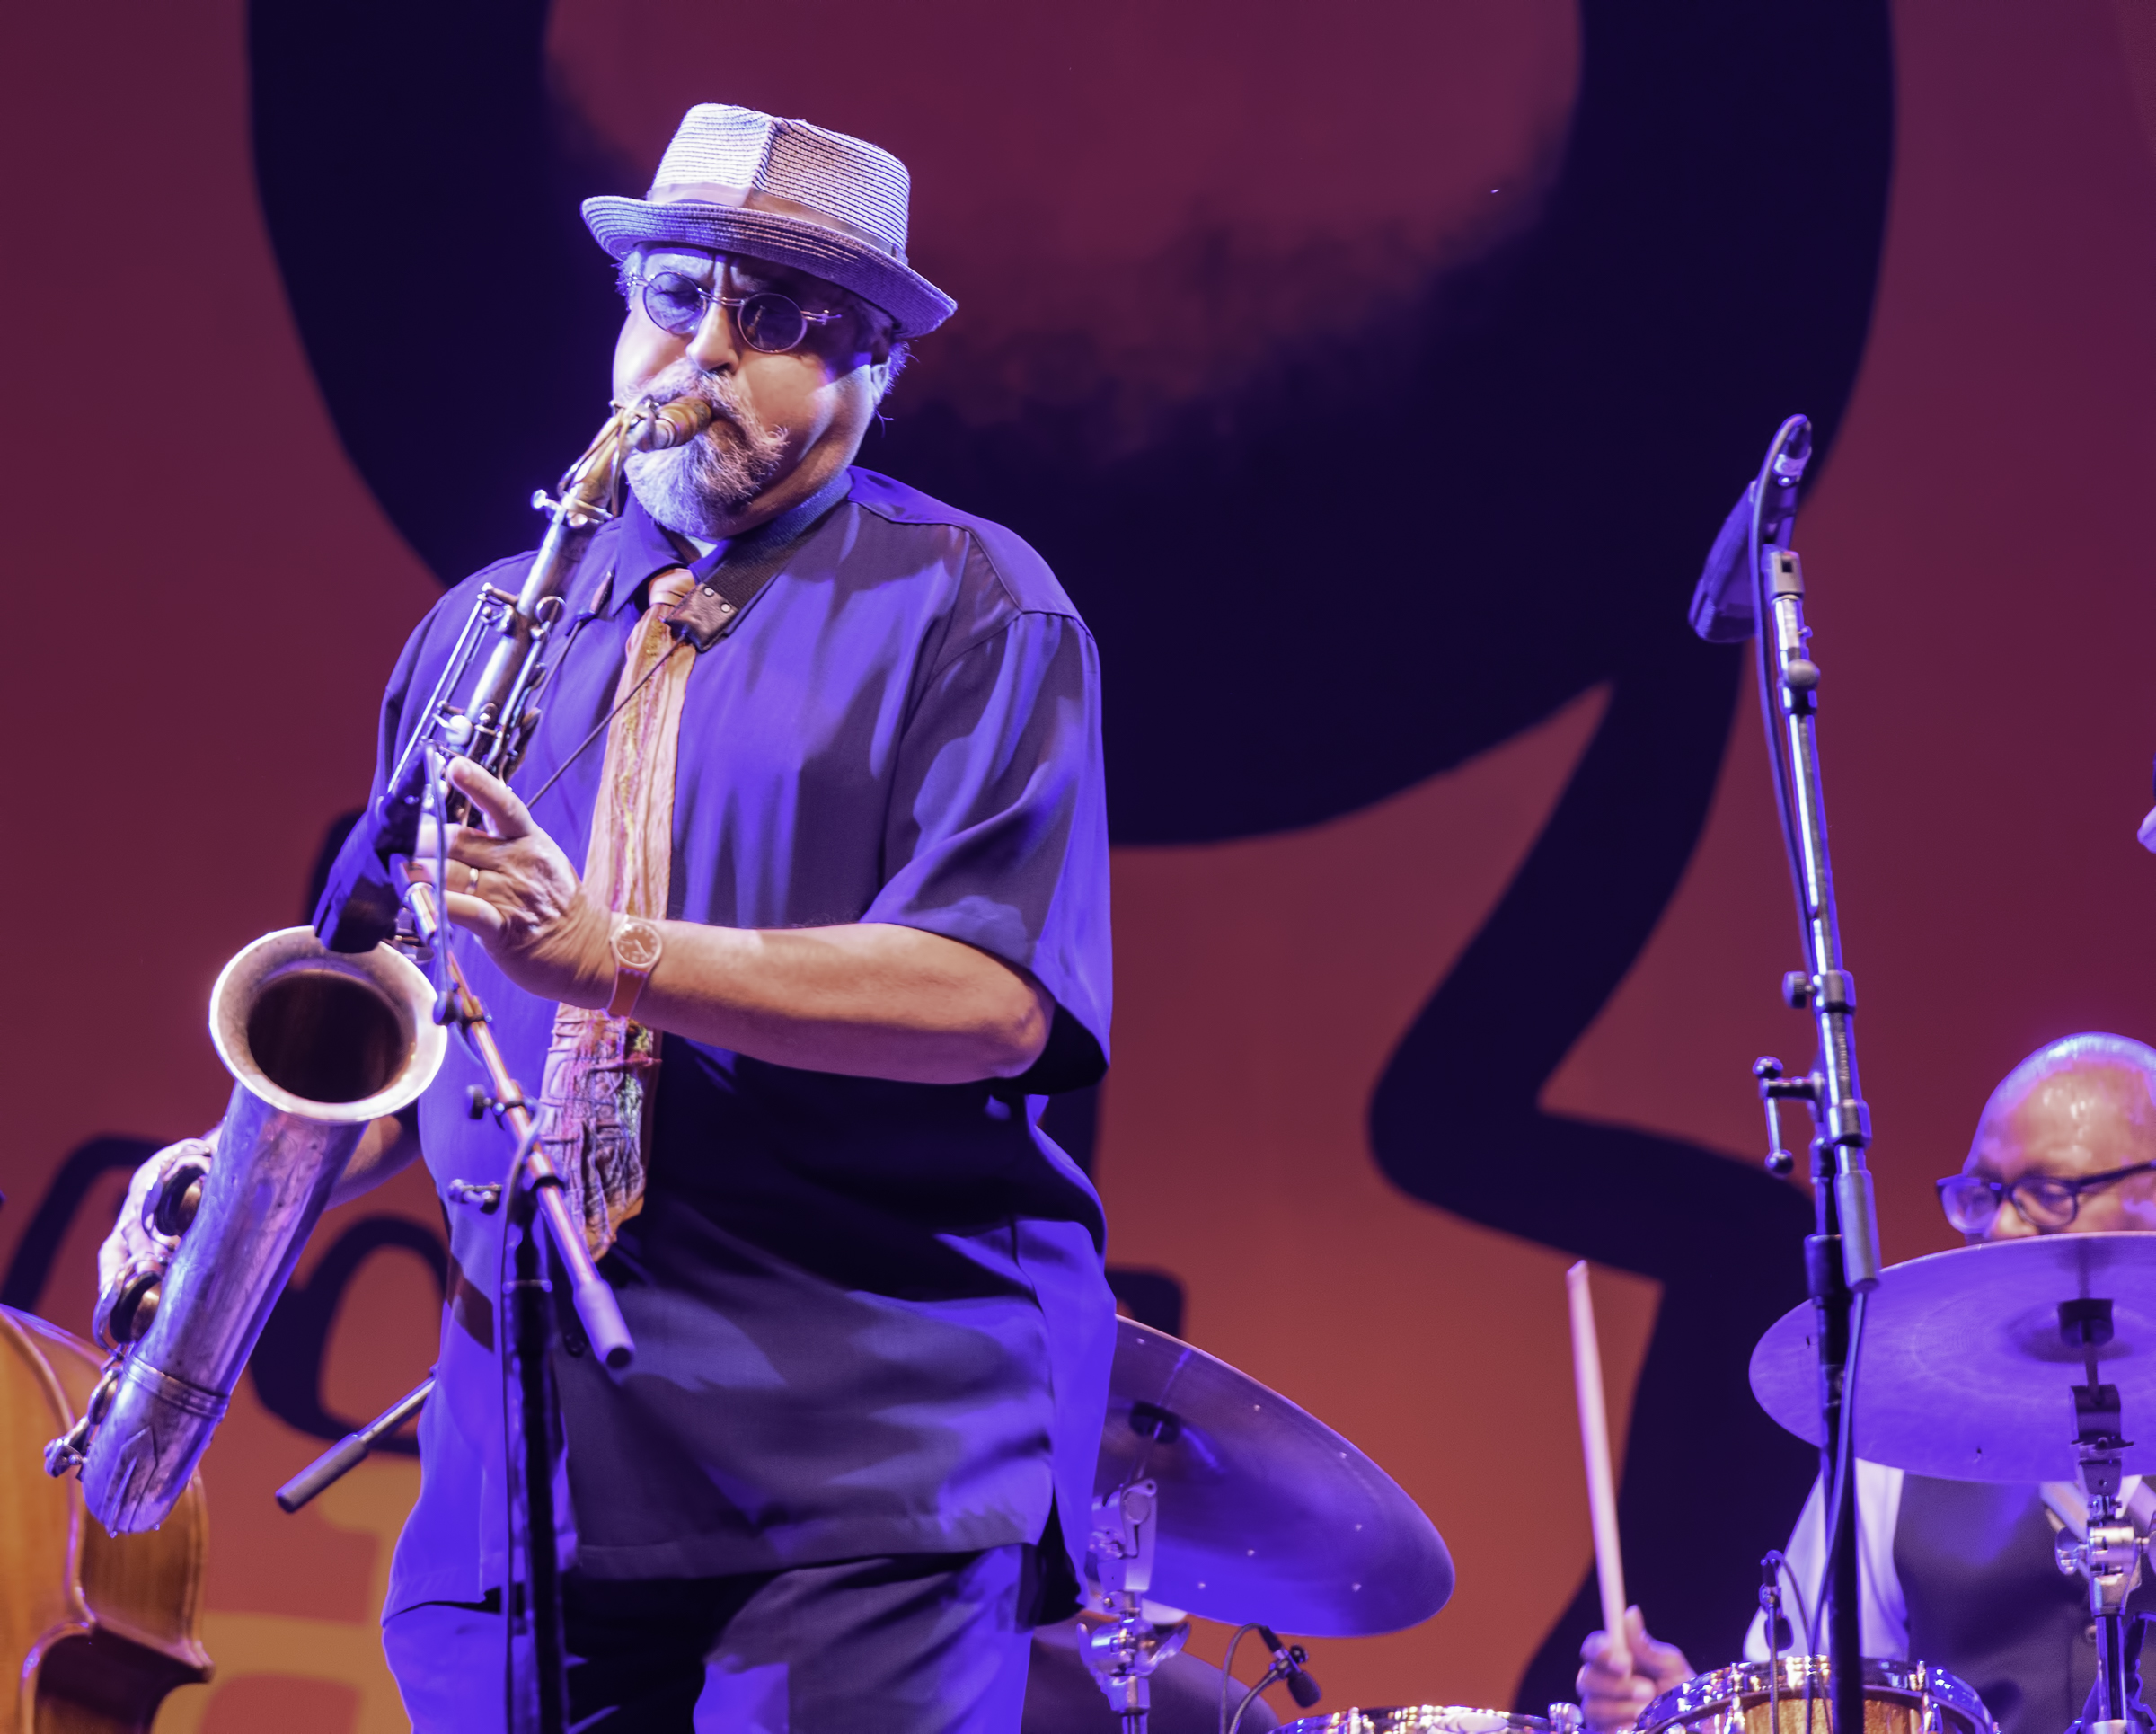 Joe Lovano and Lewis Nash with A Tribute to Sonny Rollins at the Monterey Jazz Festival